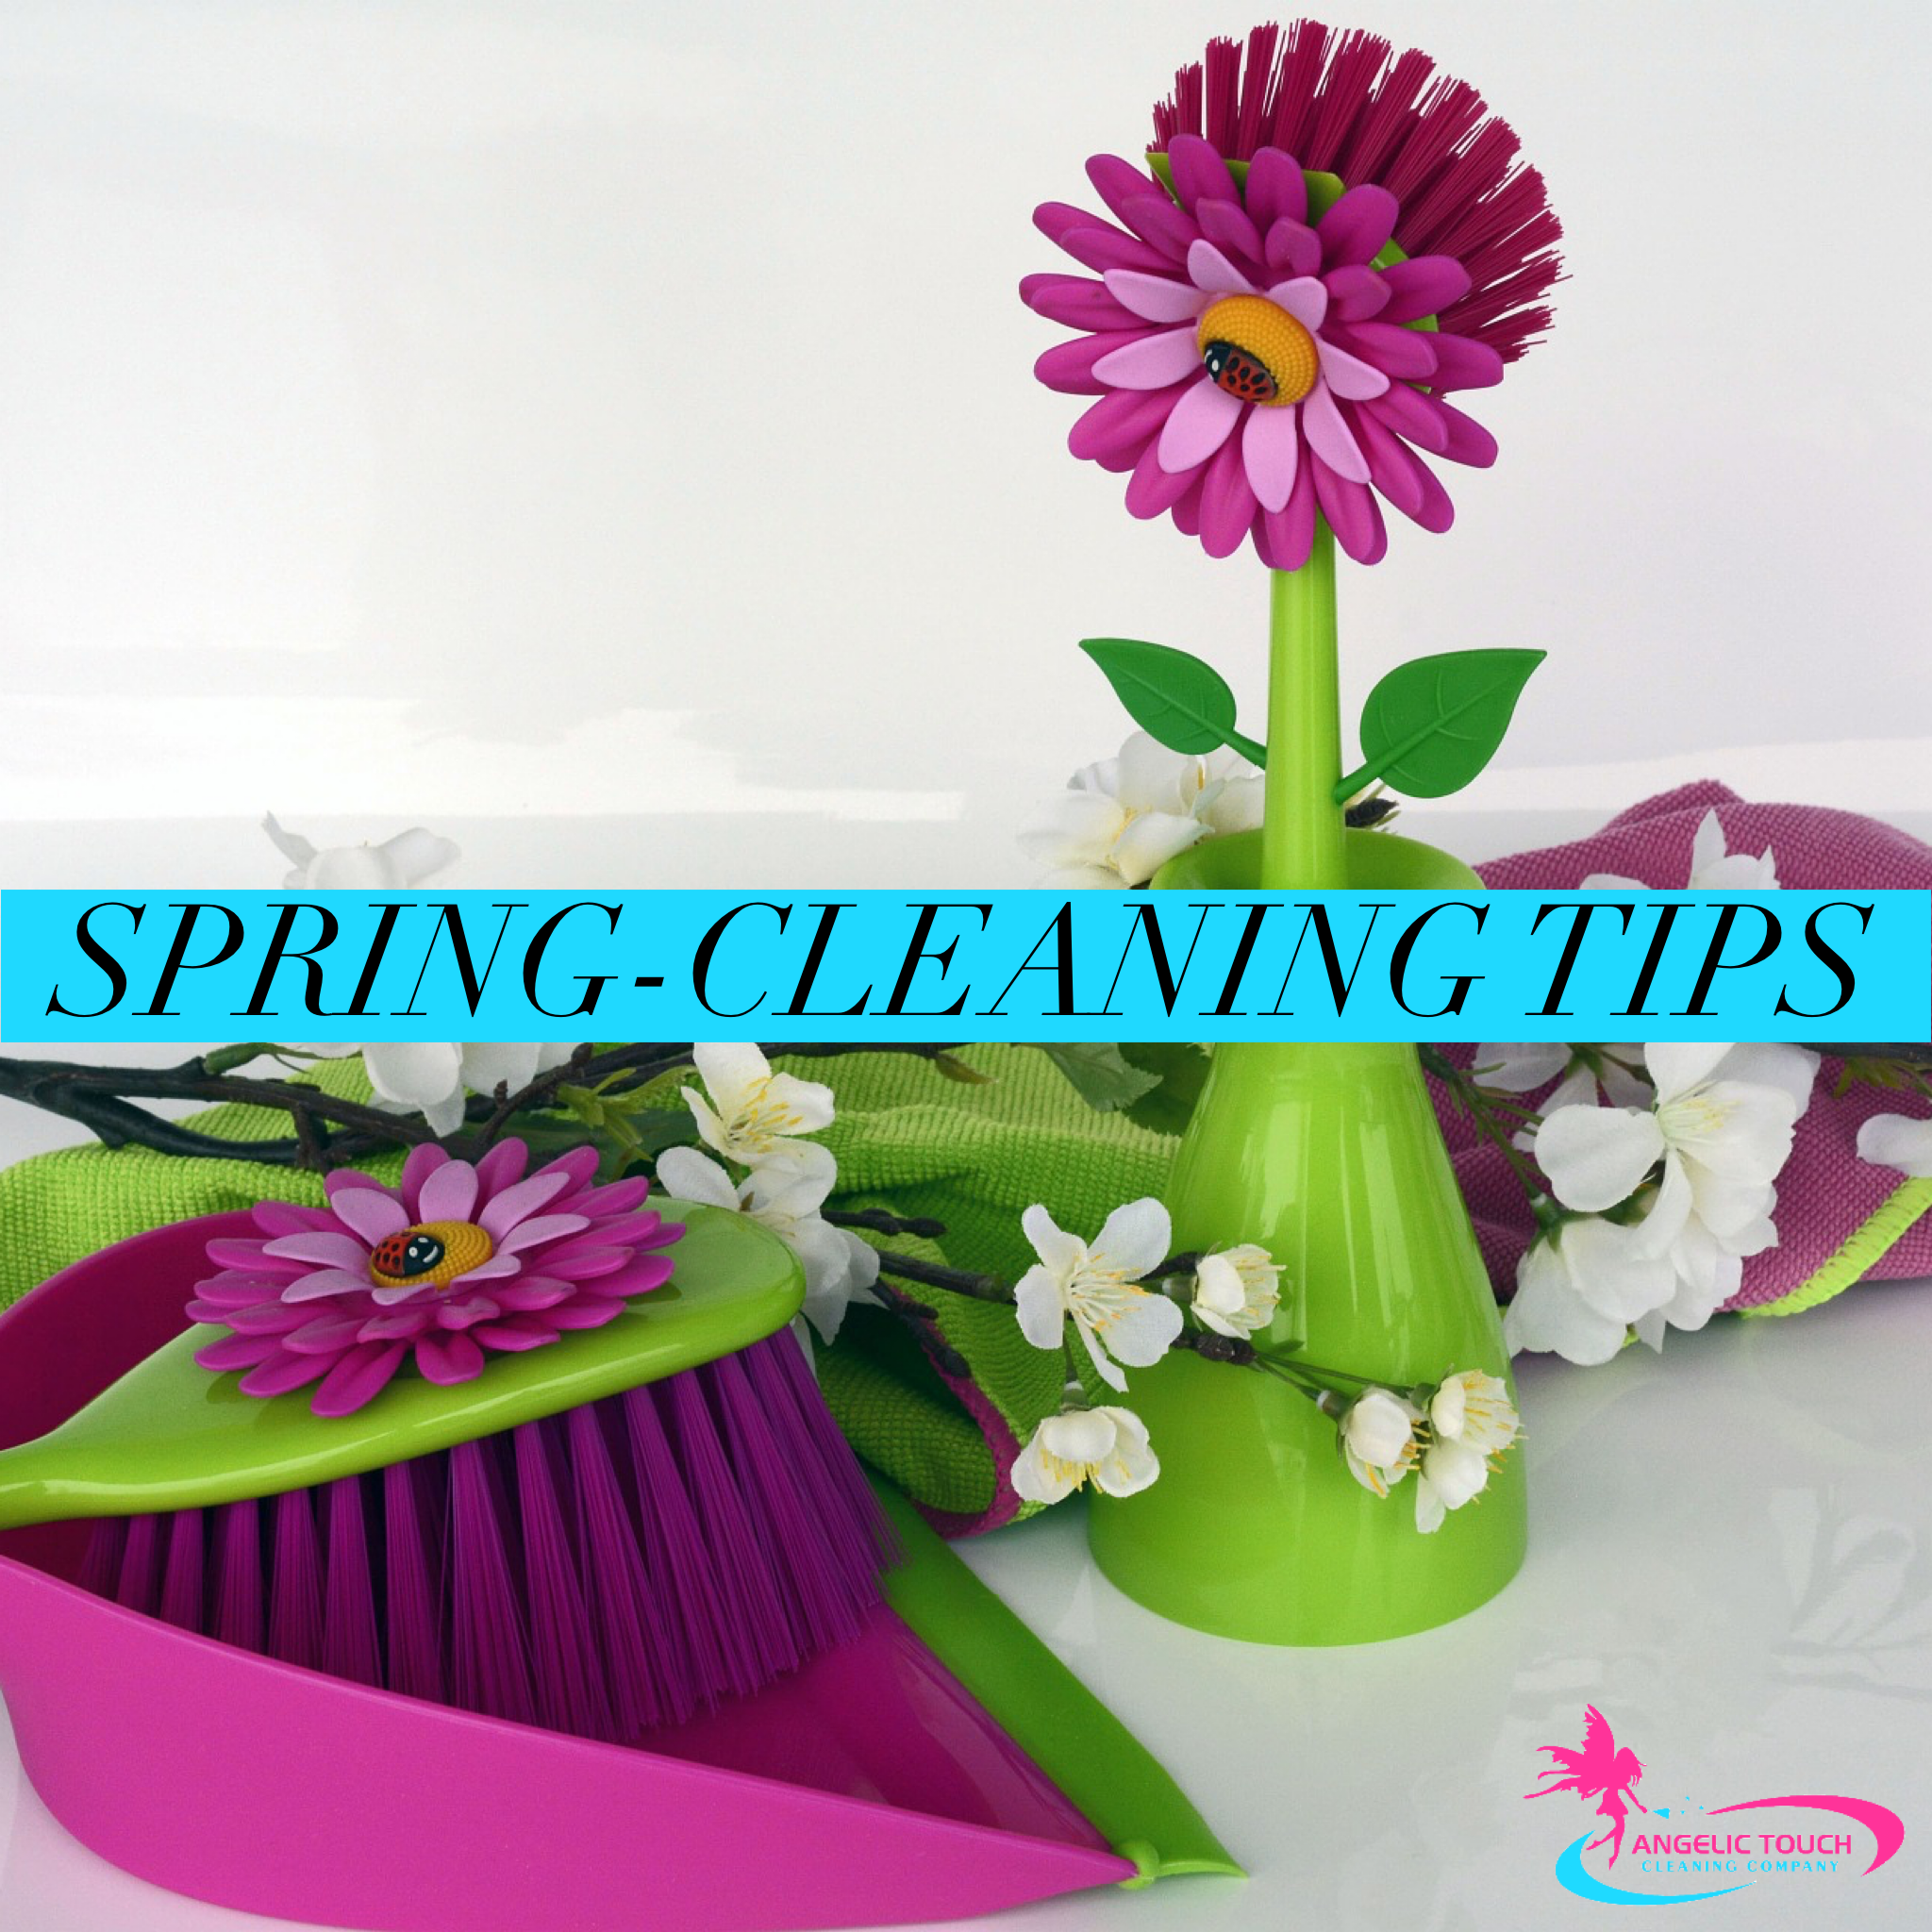 Spring-Cleaning Tips